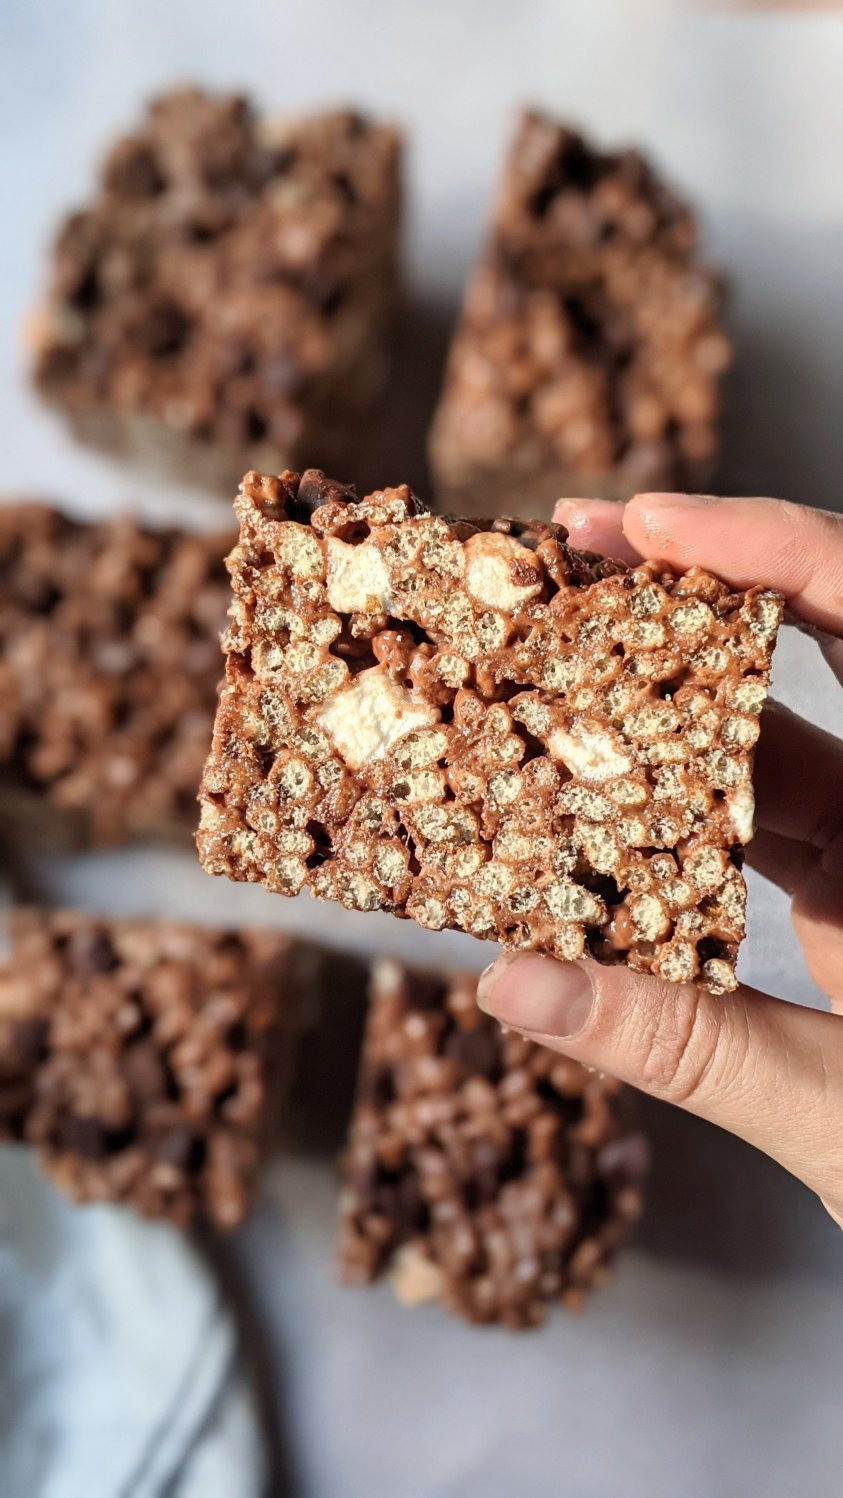 plant based chocolate rice krispie treats recipe vegan gluten free rice crispy cereal treat bars recipe with cocoa powder and brown rice cereal recipes healthy chocolate snacks for summer no glyphosophate or chemicals